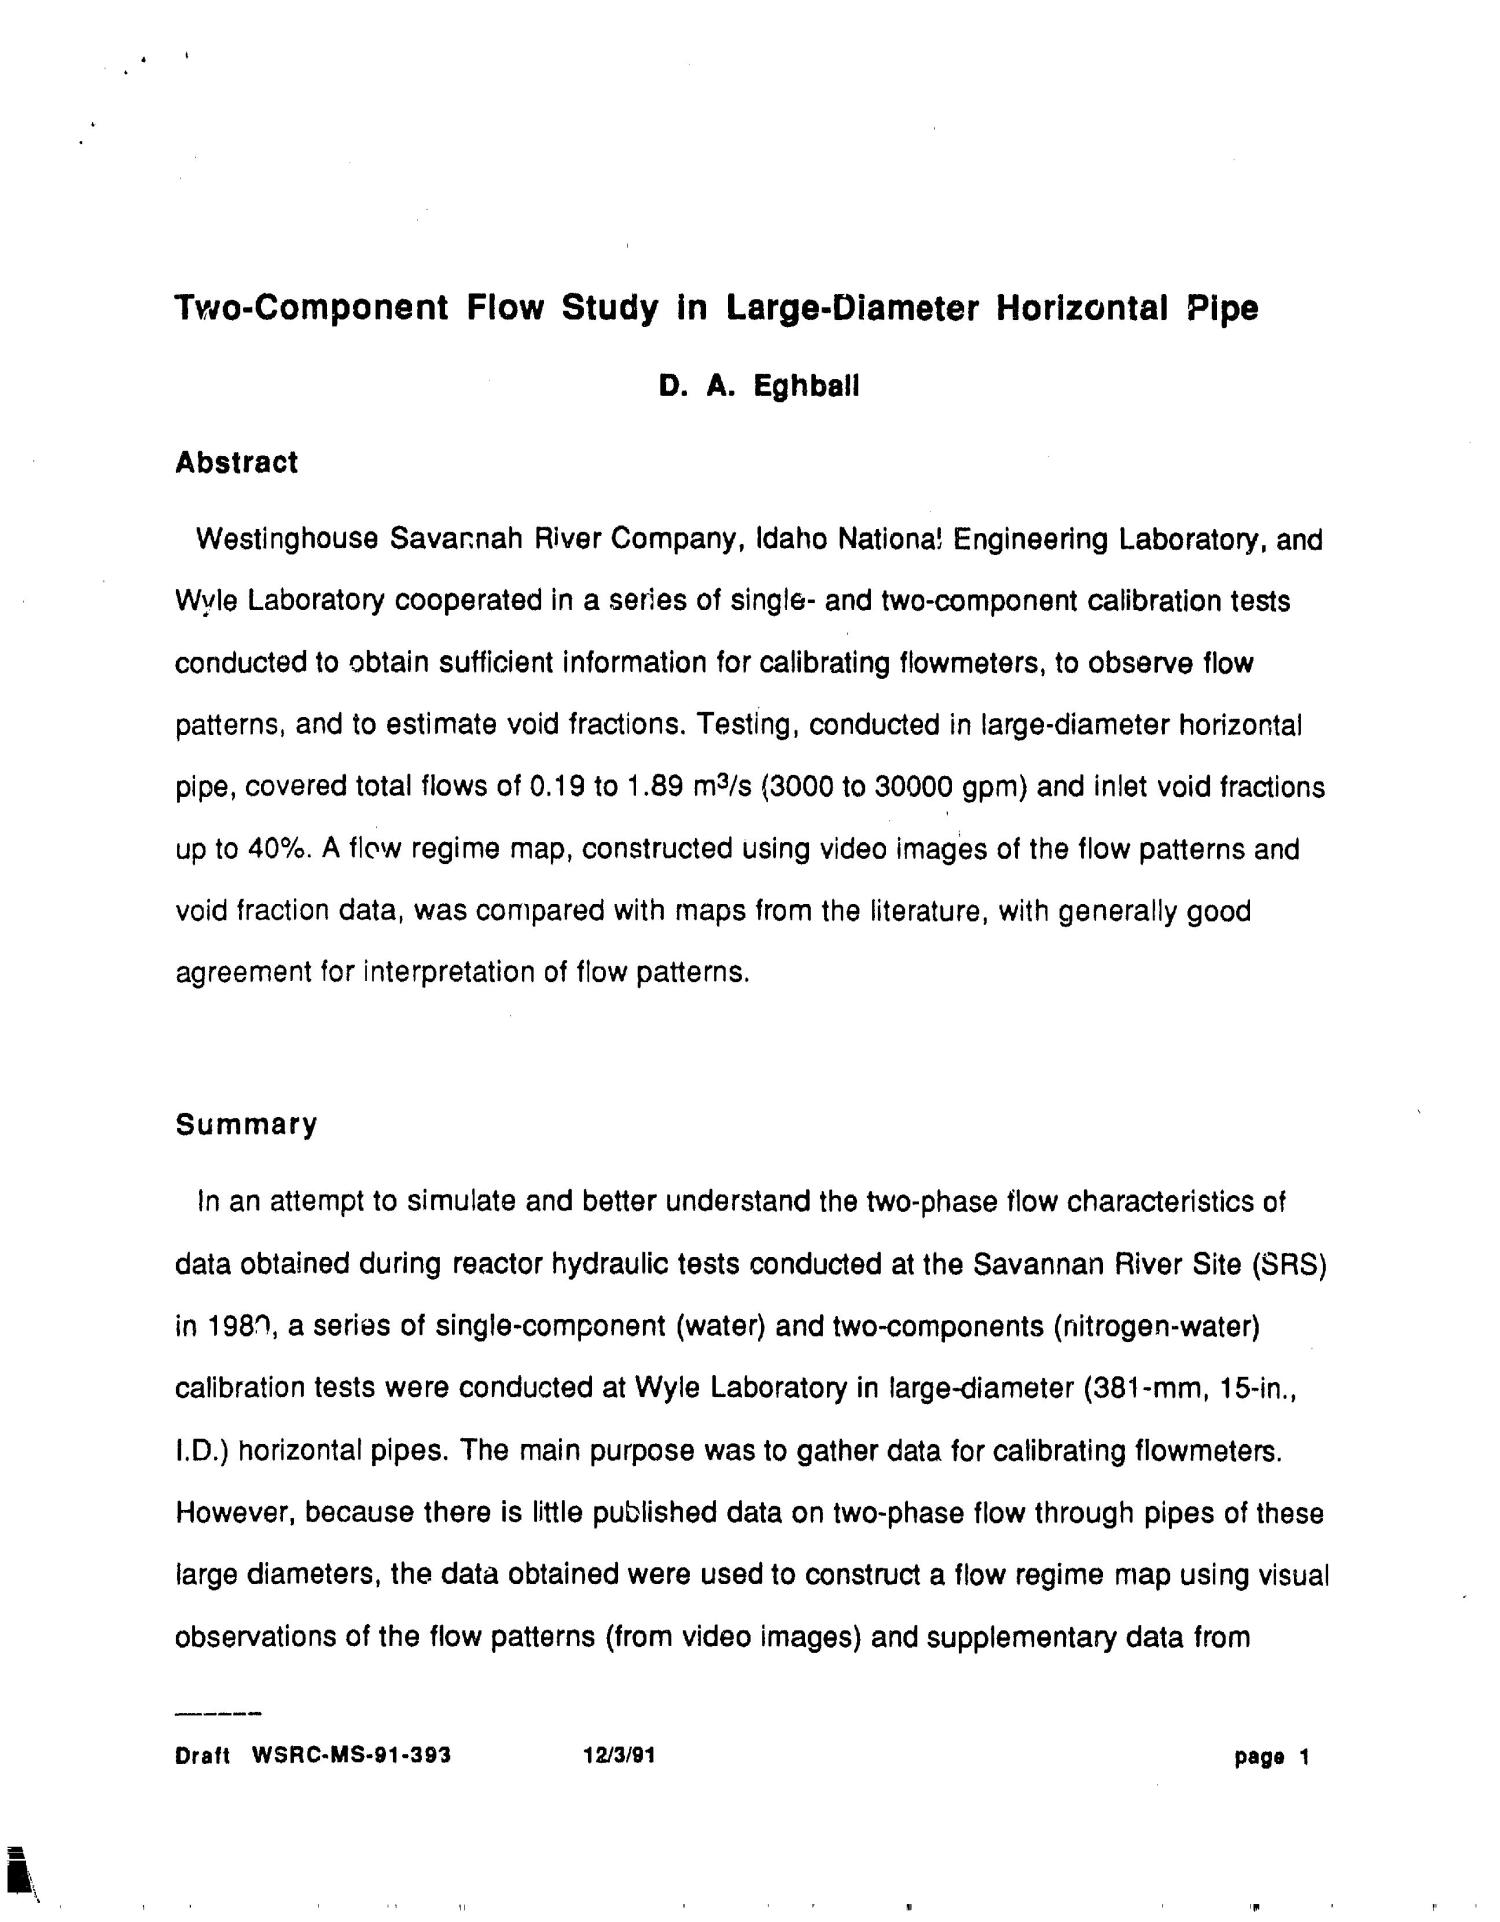 Two-component flow study in large-diameter horizontal pipe                                                                                                      [Sequence #]: 2 of 30